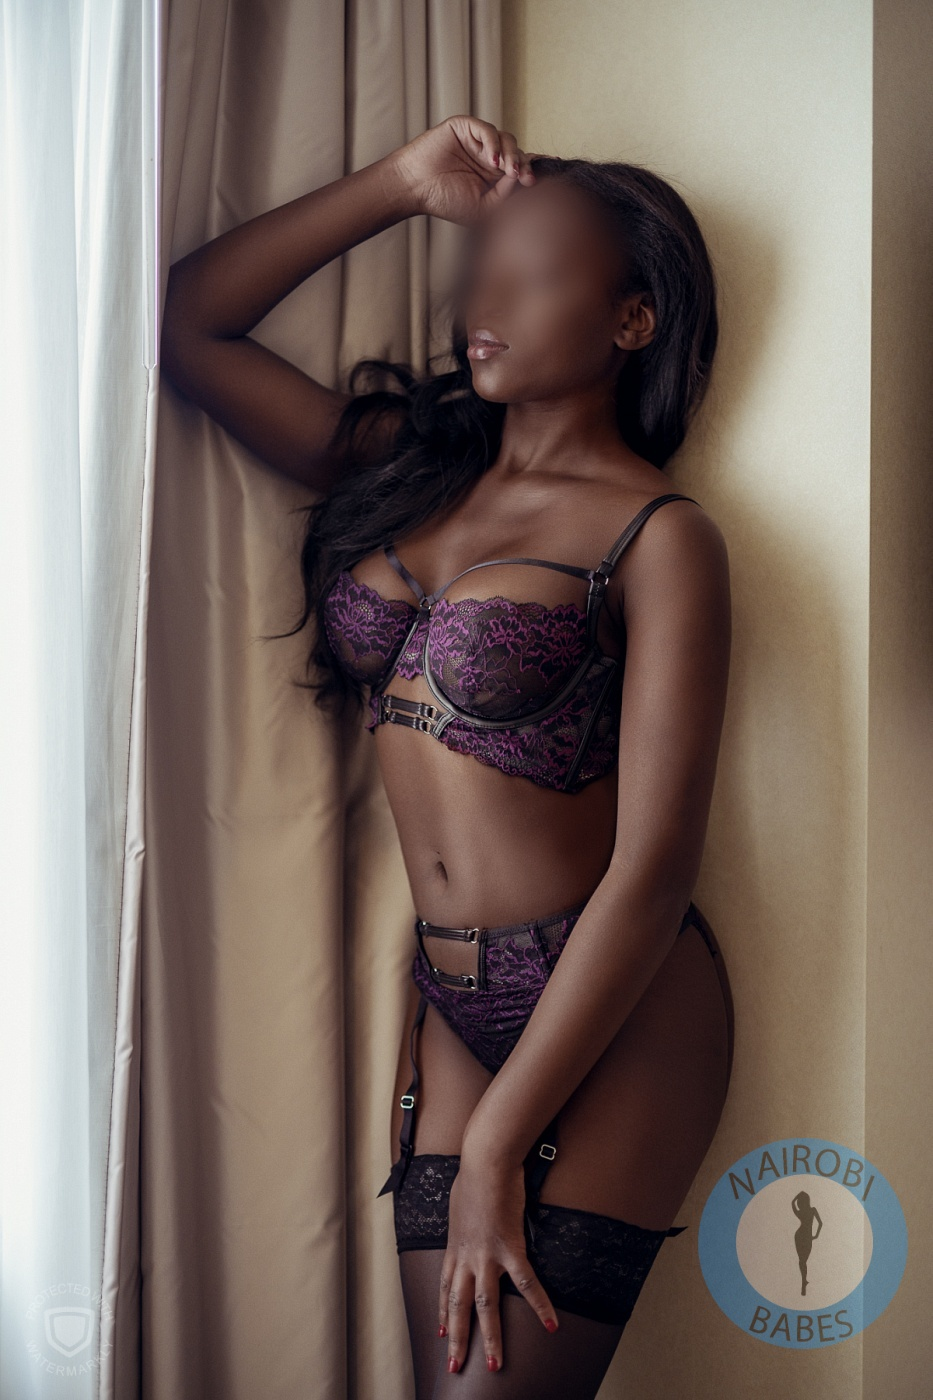 Spend some time with Nairobibabes Escort Elsie in CBD ; you won't regret it